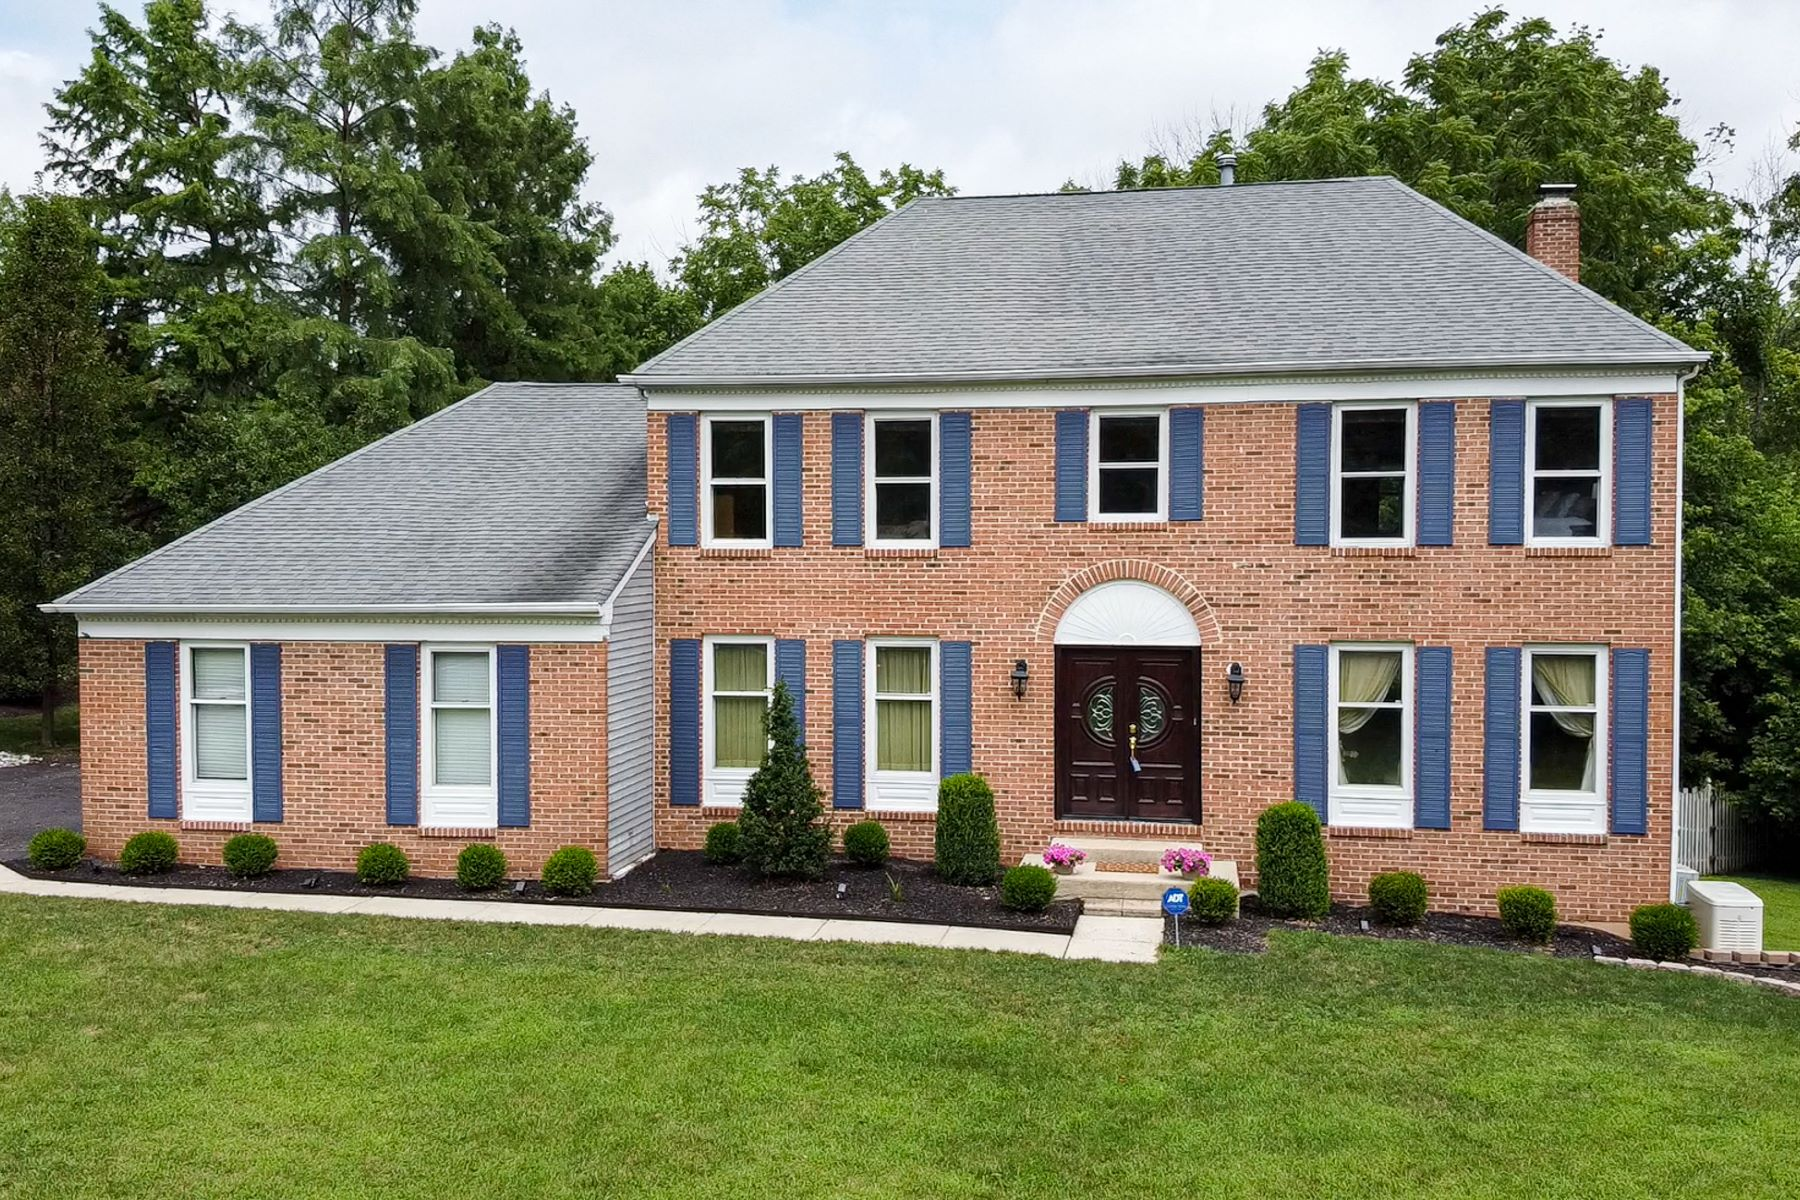 Single Family Homes for Sale at Classic Brick Front Colonial 8 Tamarack Drive, Branchburg, New Jersey 08853 United States